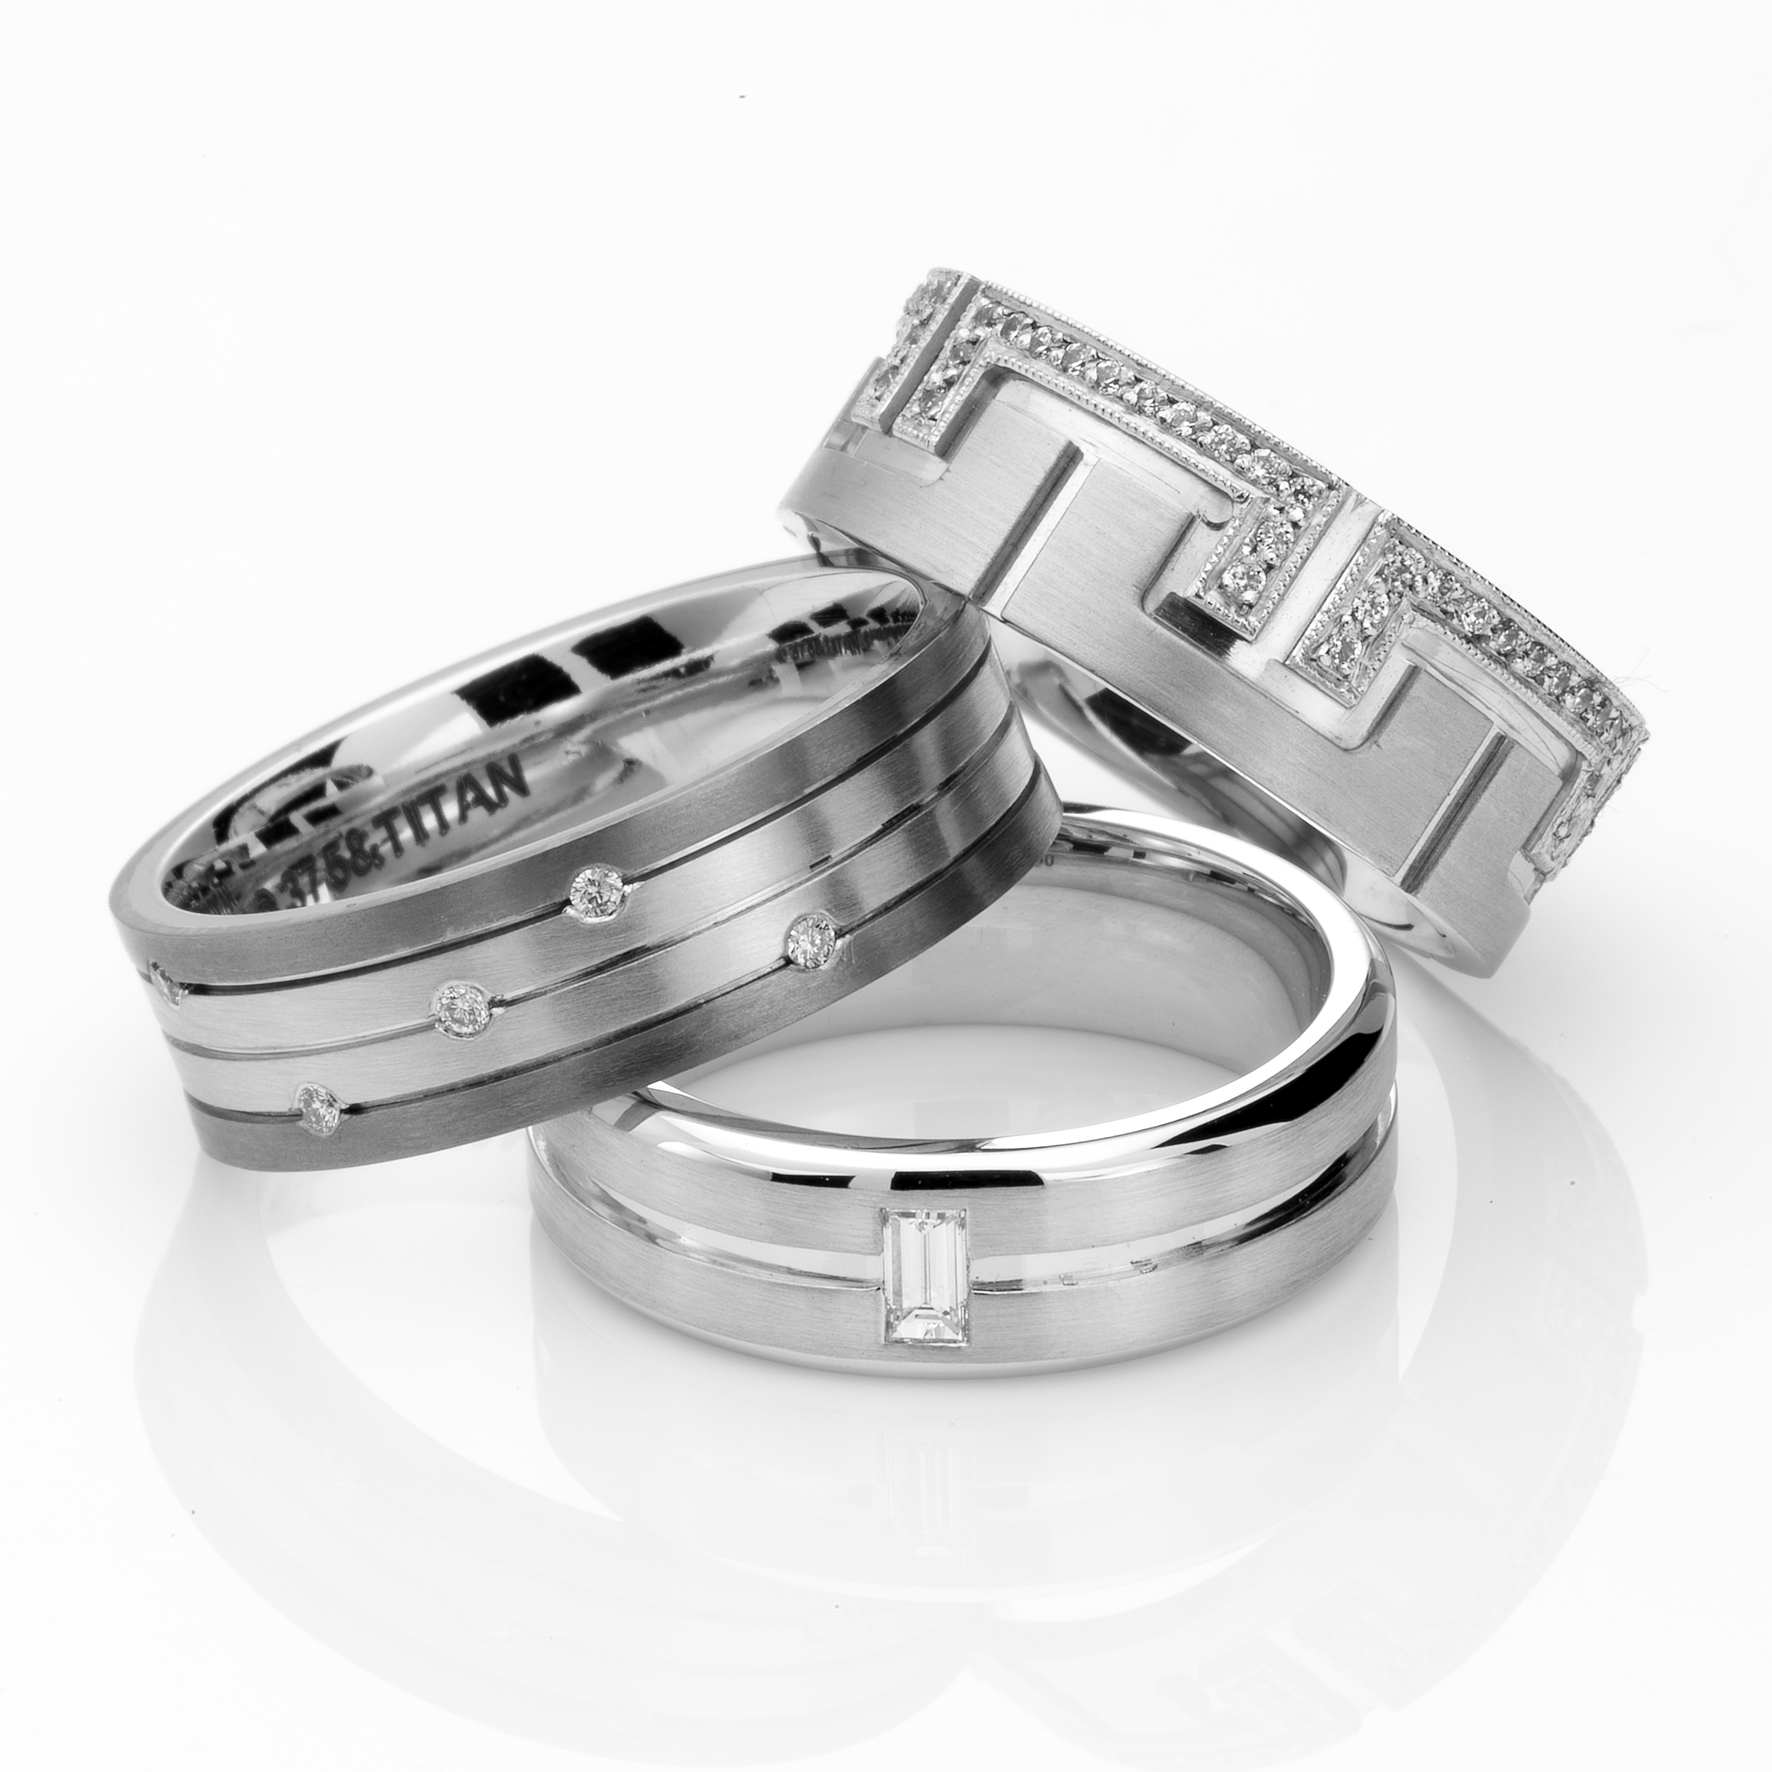 same couples engagement and wedding rings  tayha designs